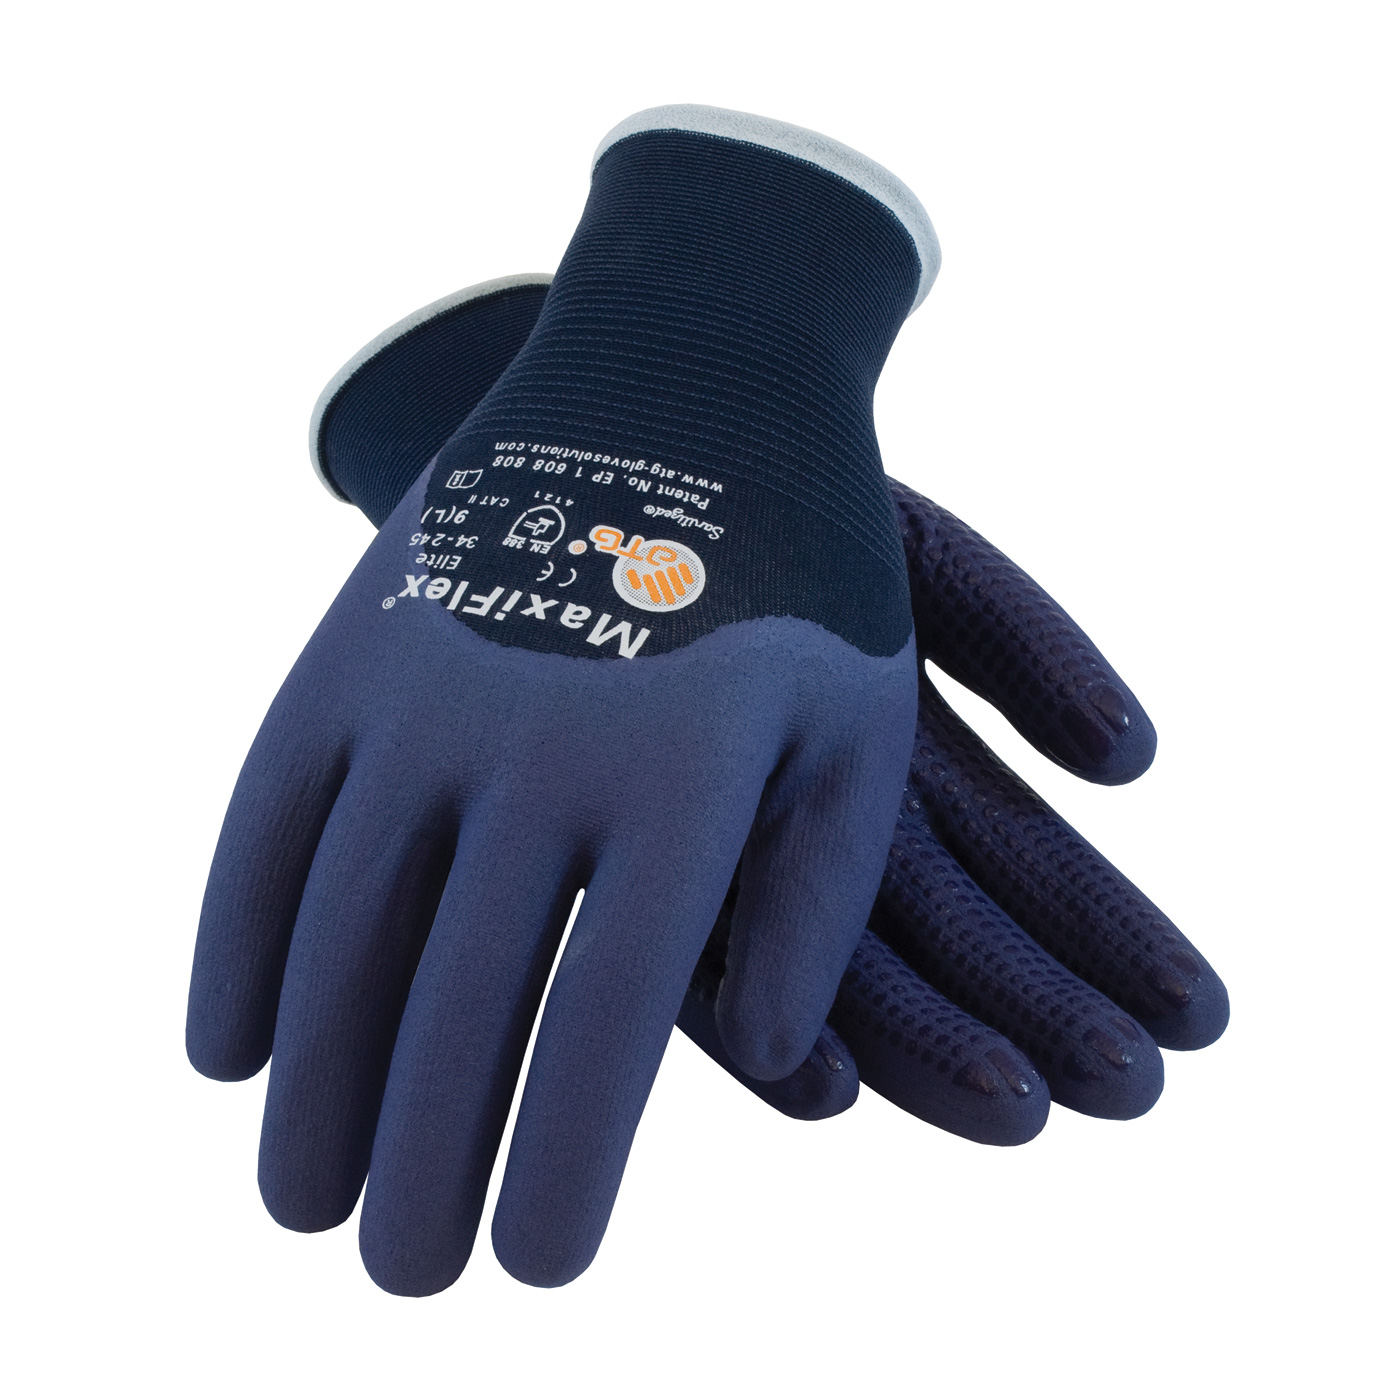 #34-245 MaxiFlex® Elite™ Nylon Gloves feature a nitrile dotted palm with a blue full finger and 3/4 knuckle coating